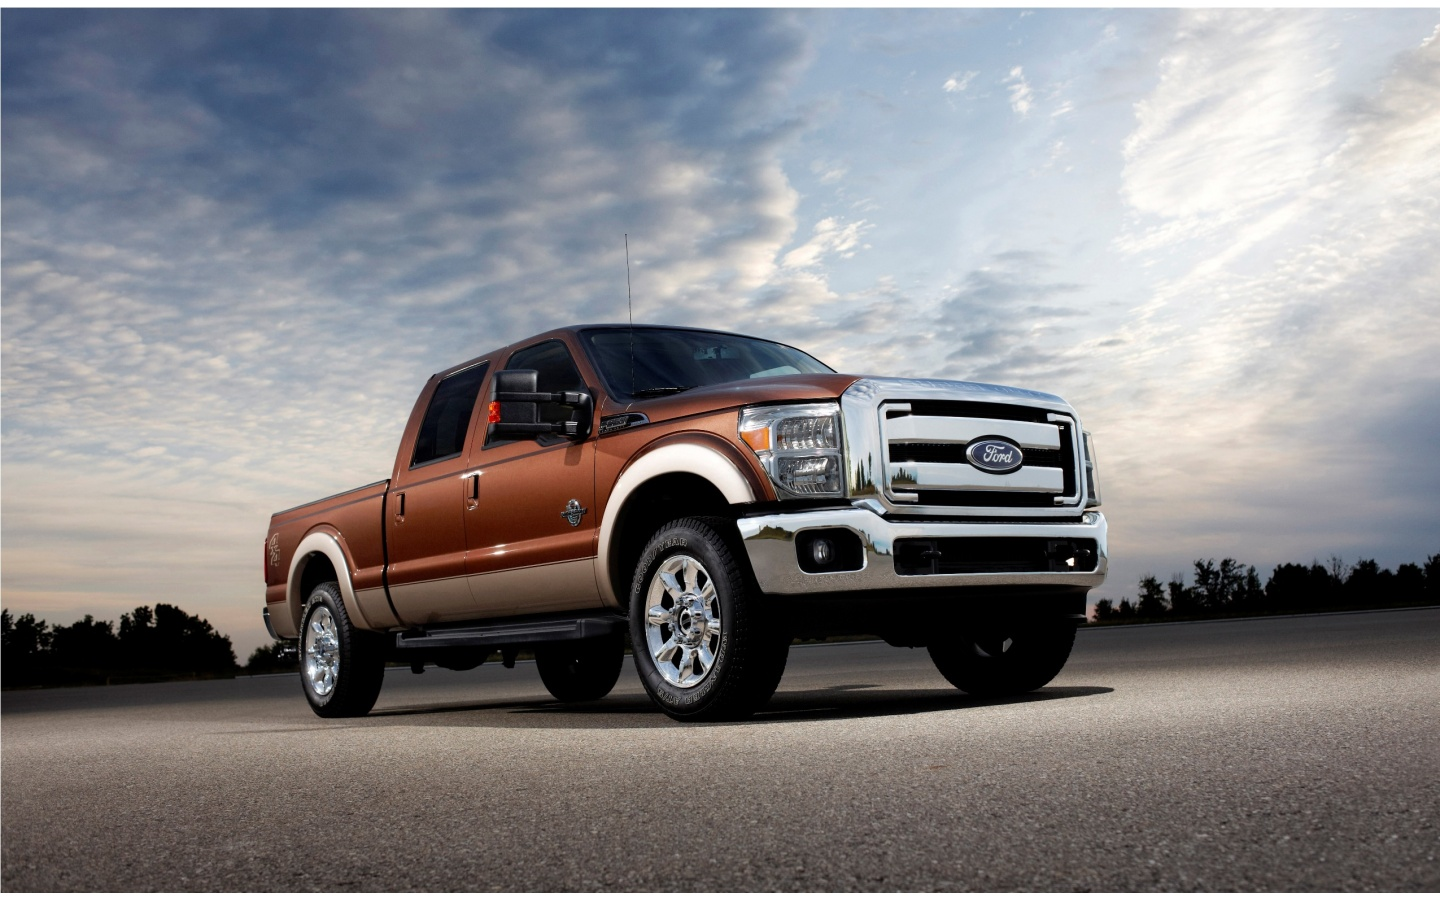 2011 ford super duty truck wallpapers 1440x900 378389